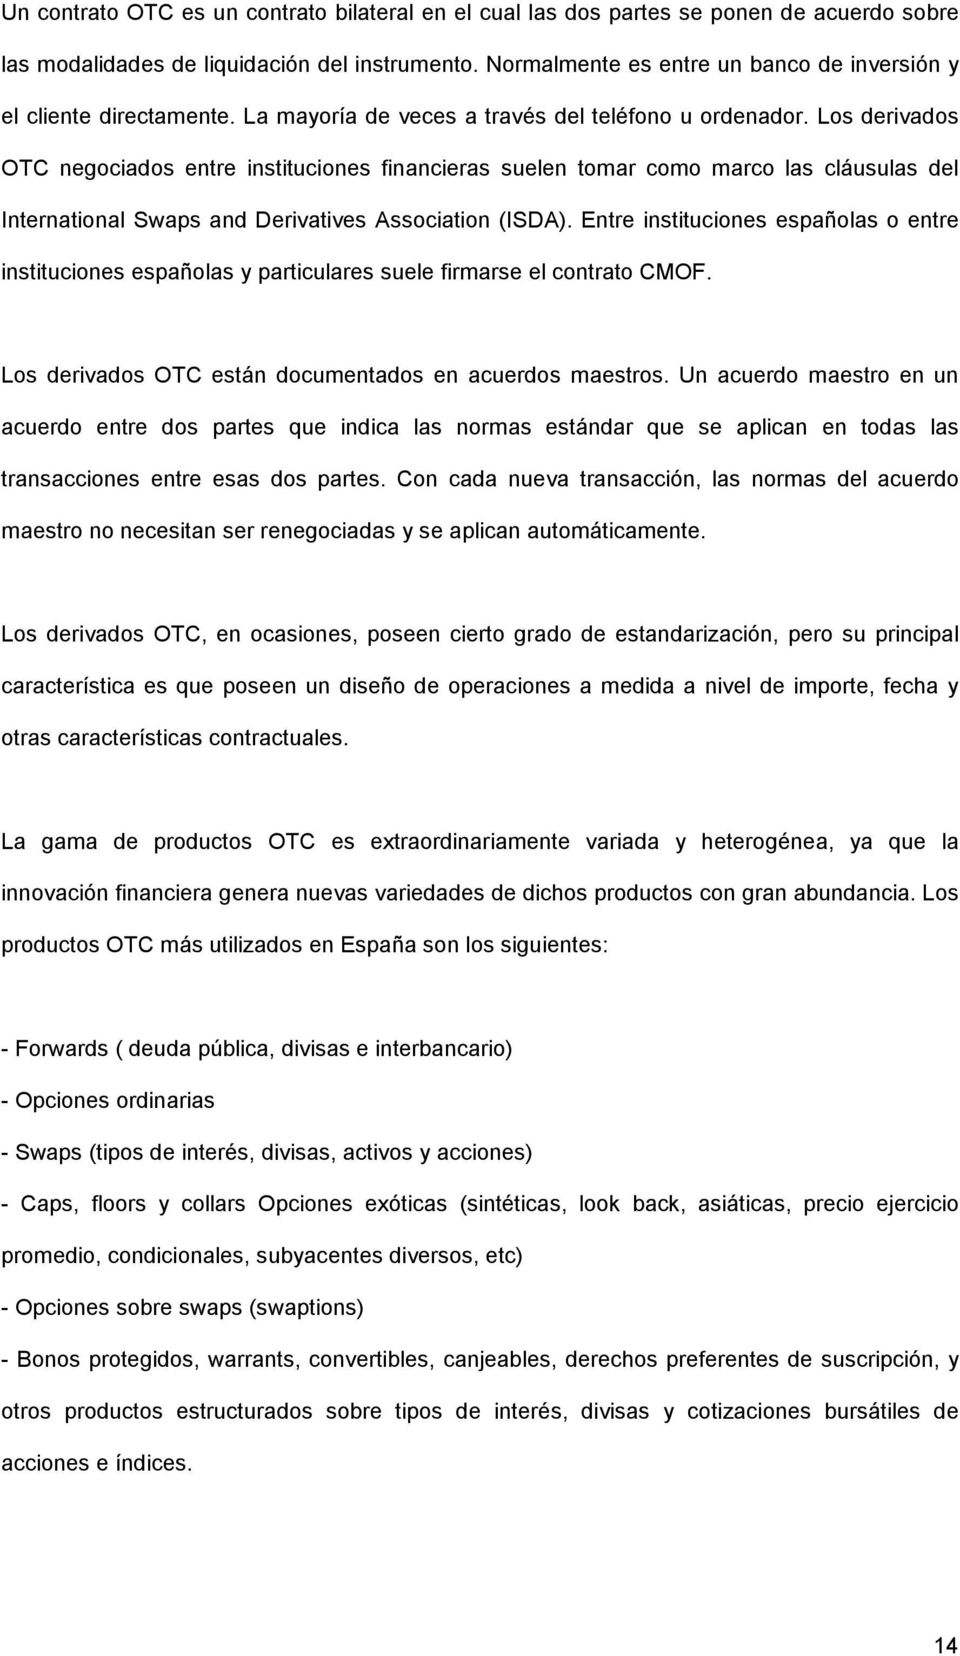 Los derivados OTC negociados entre instituciones financieras suelen tomar como marco las cláusulas del International Swaps and Derivatives Association (ISDA).